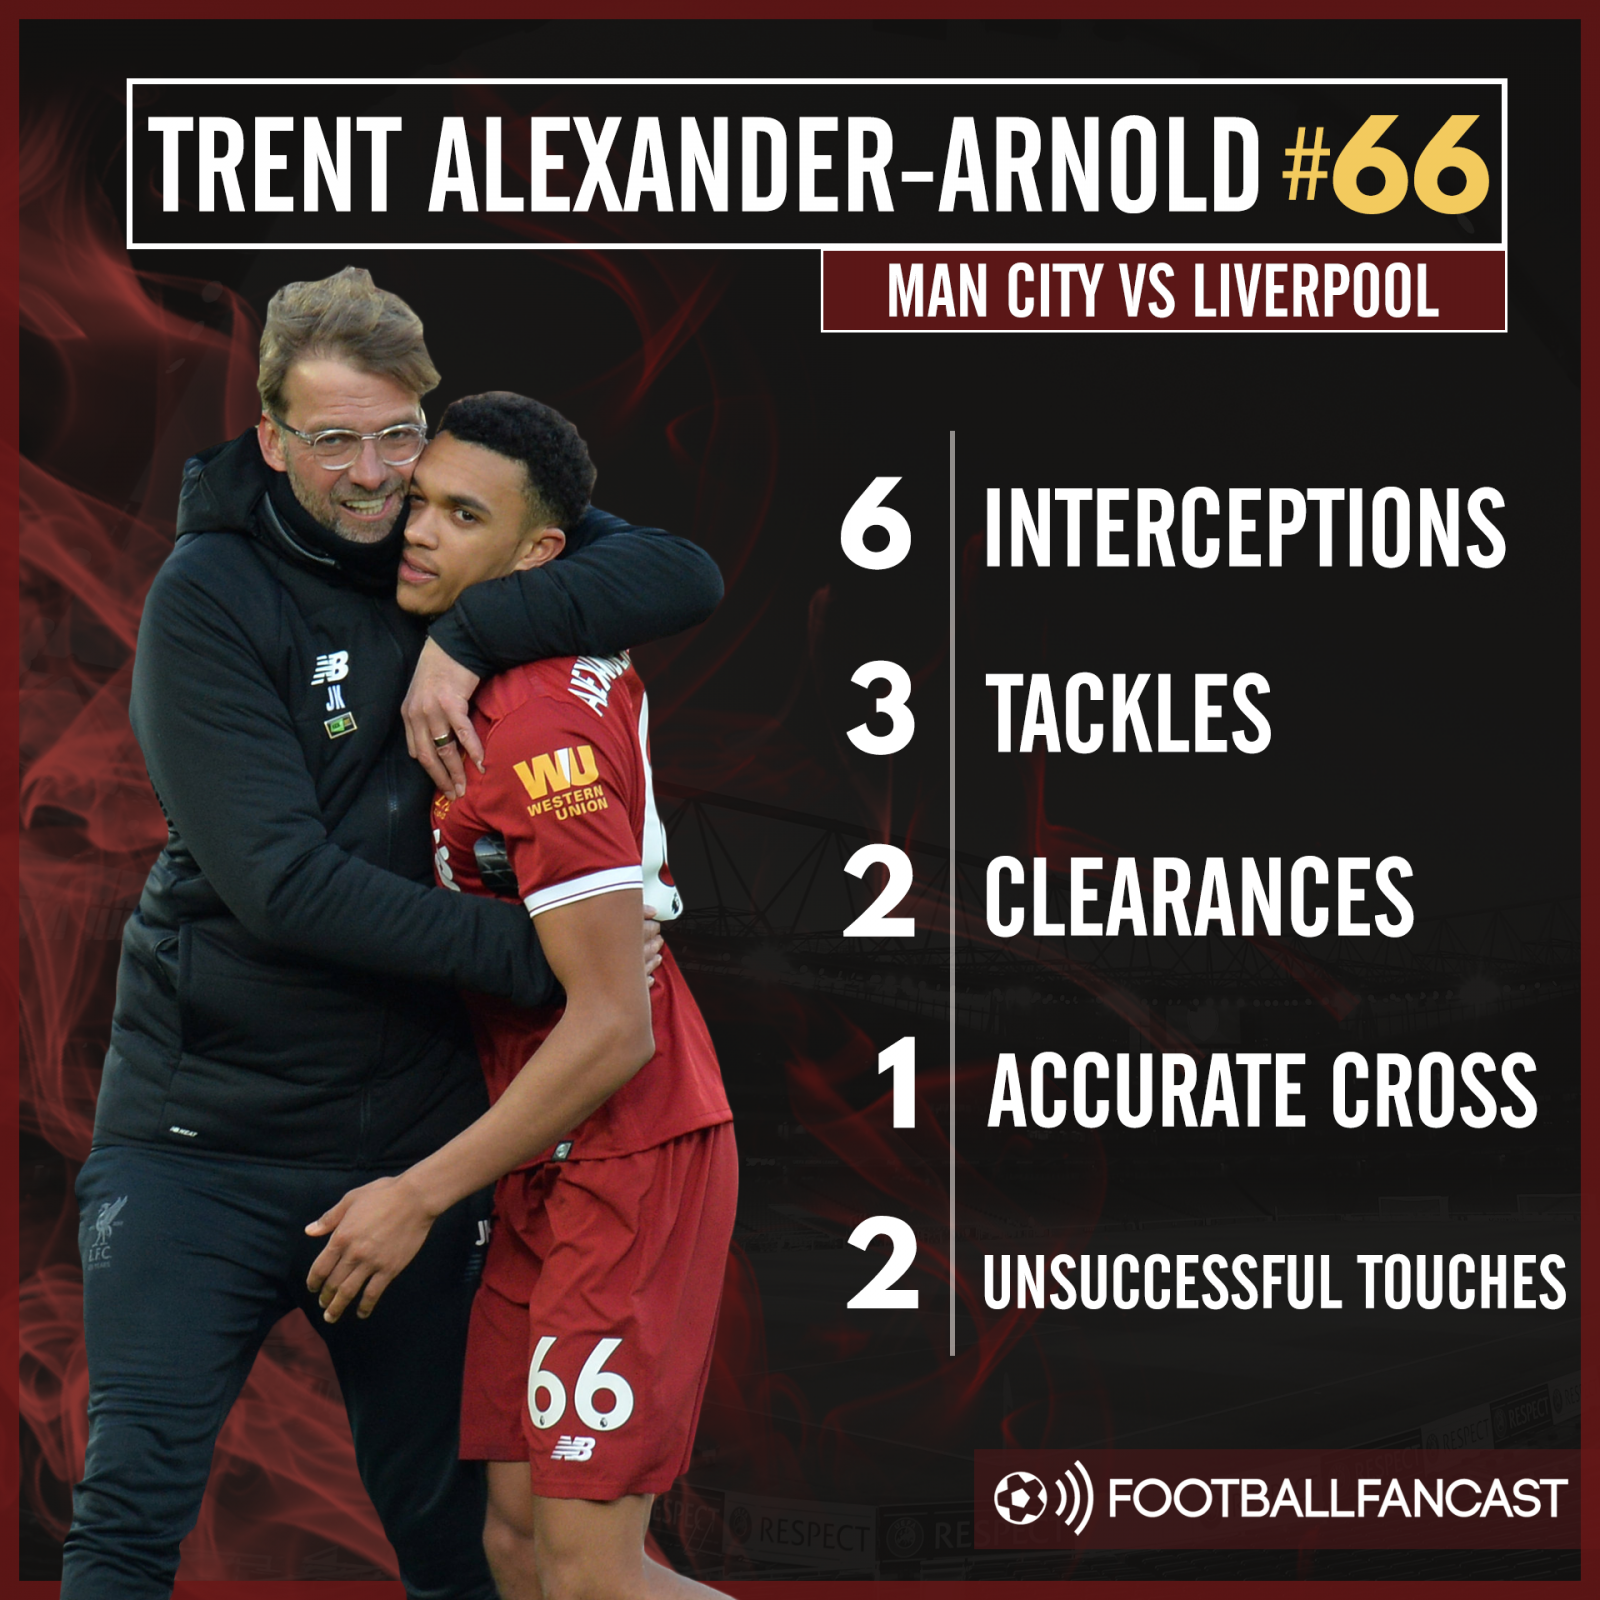 Trent Alexander-Arnold's stats from Liverpool's 2-1 win over Man City